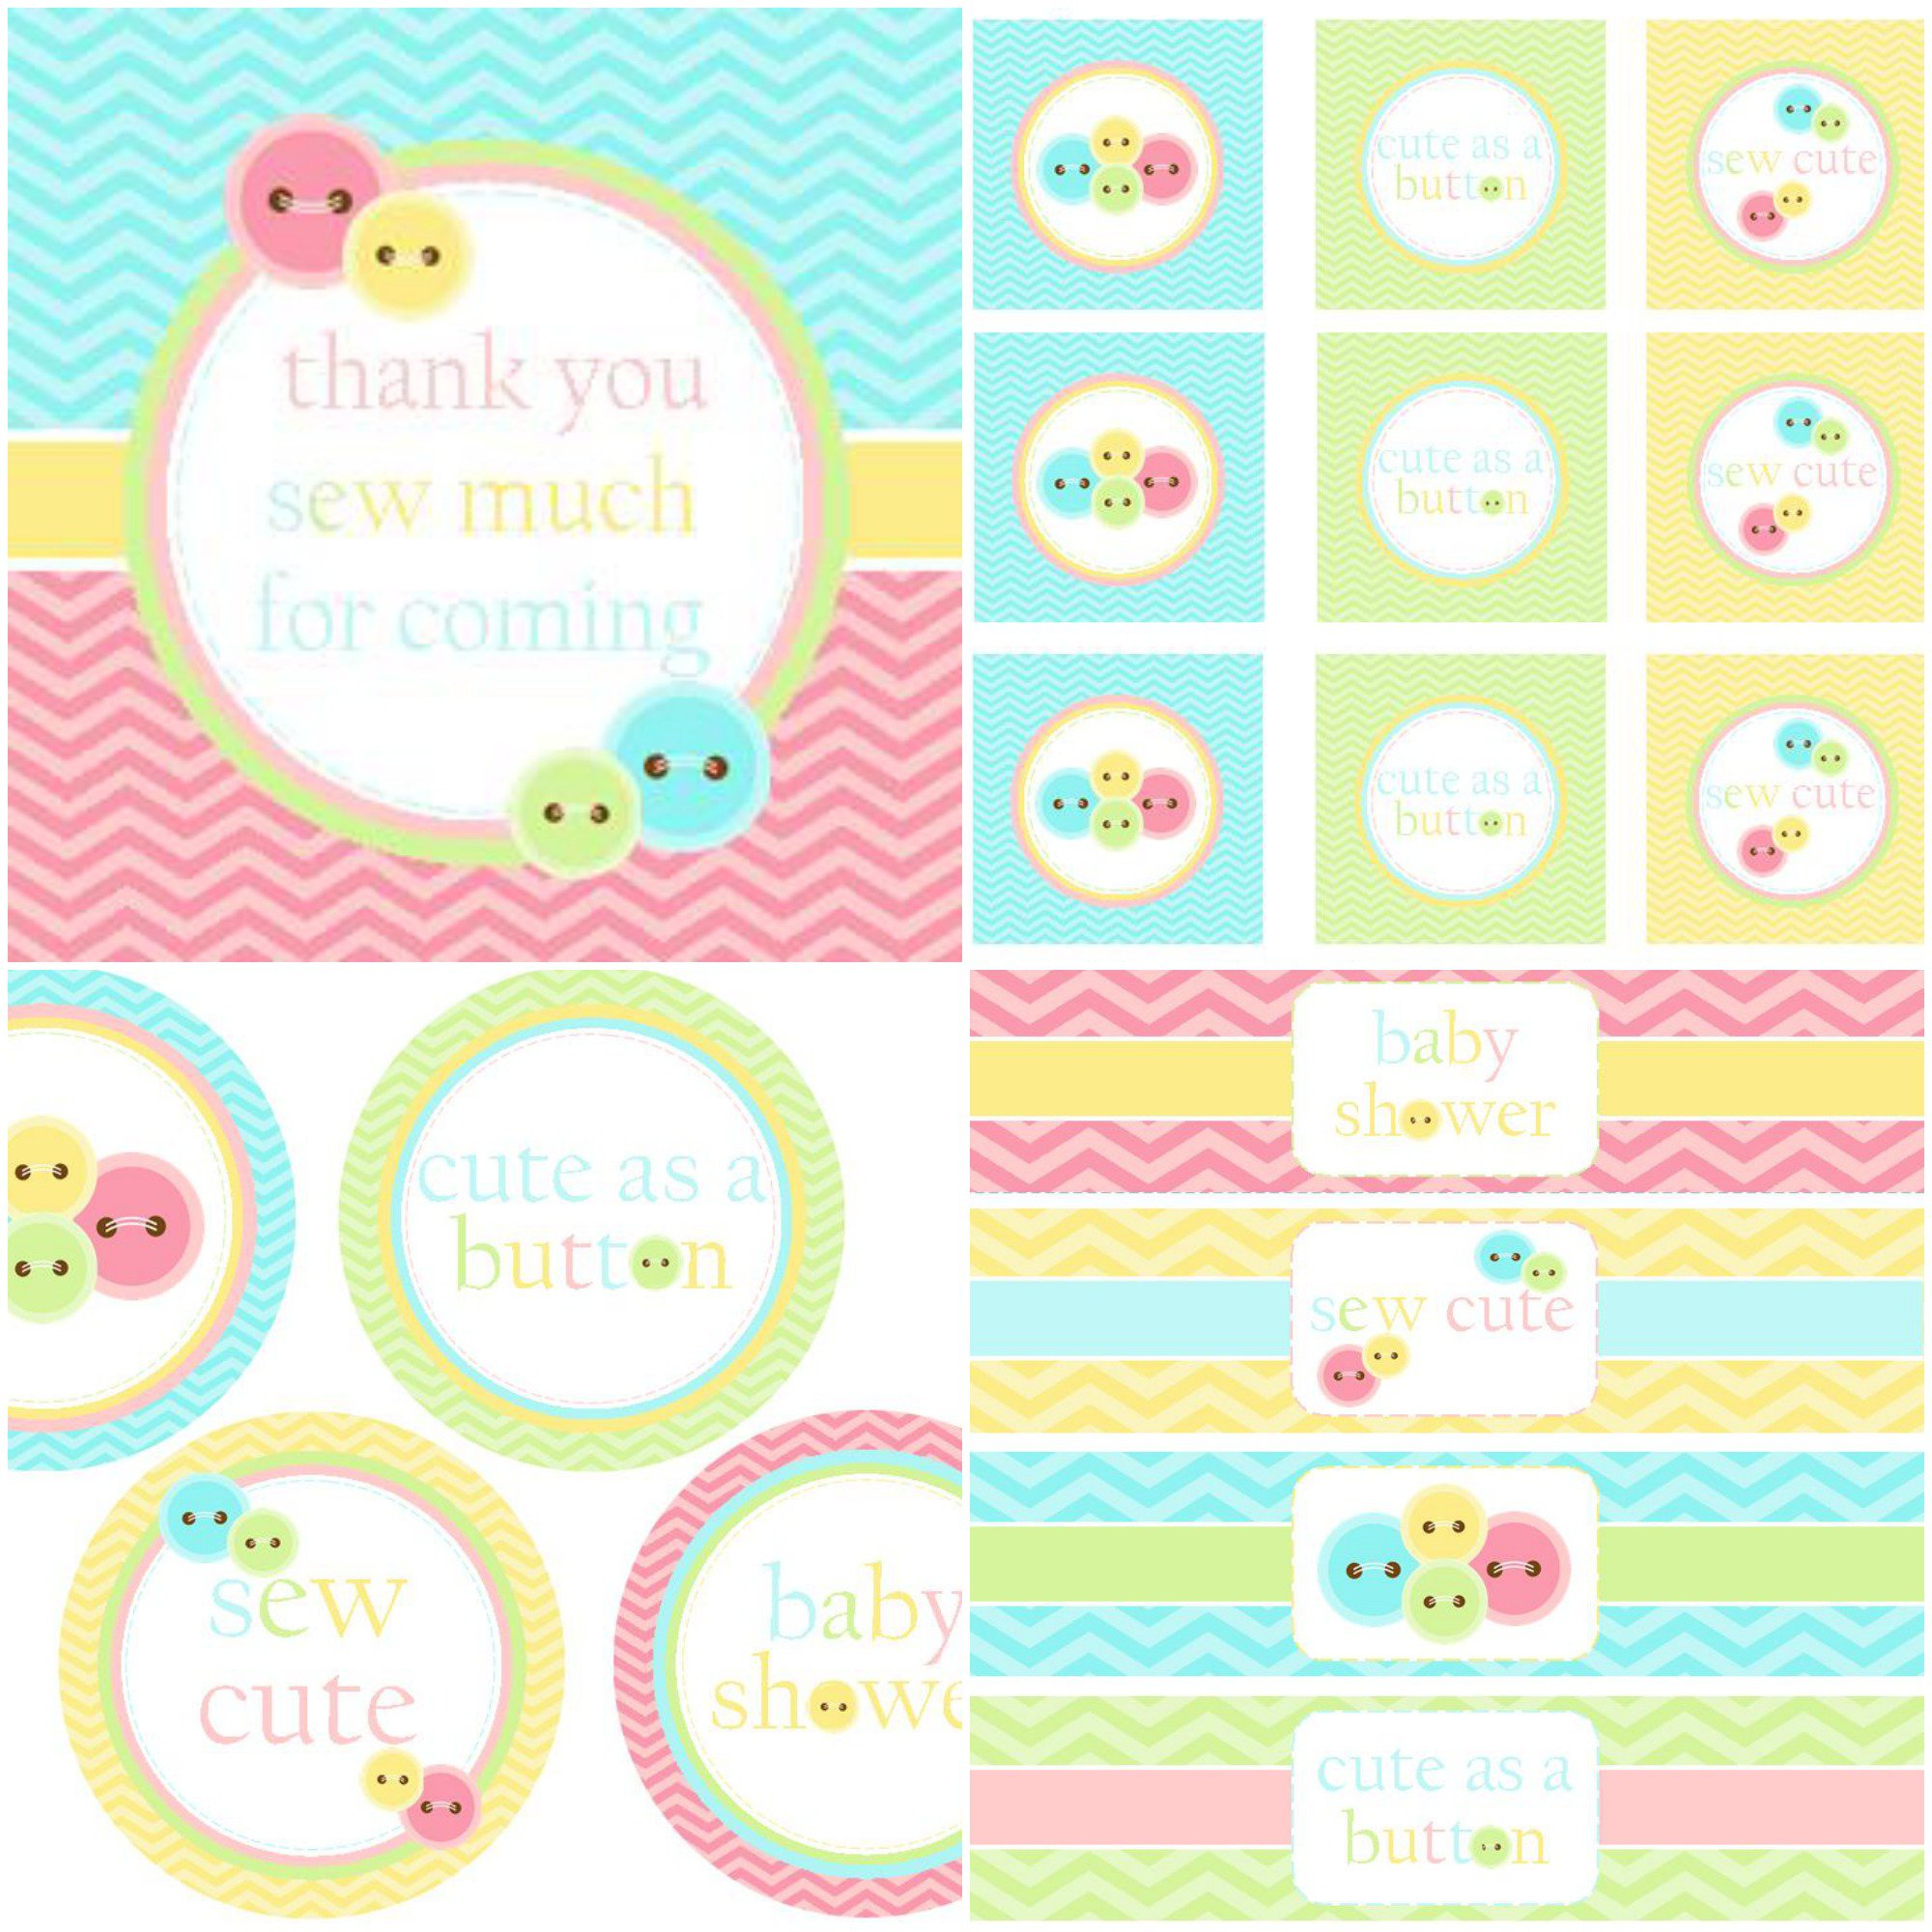 Cute As A Button Baby Shower Invitation Templates Baby Shower ...